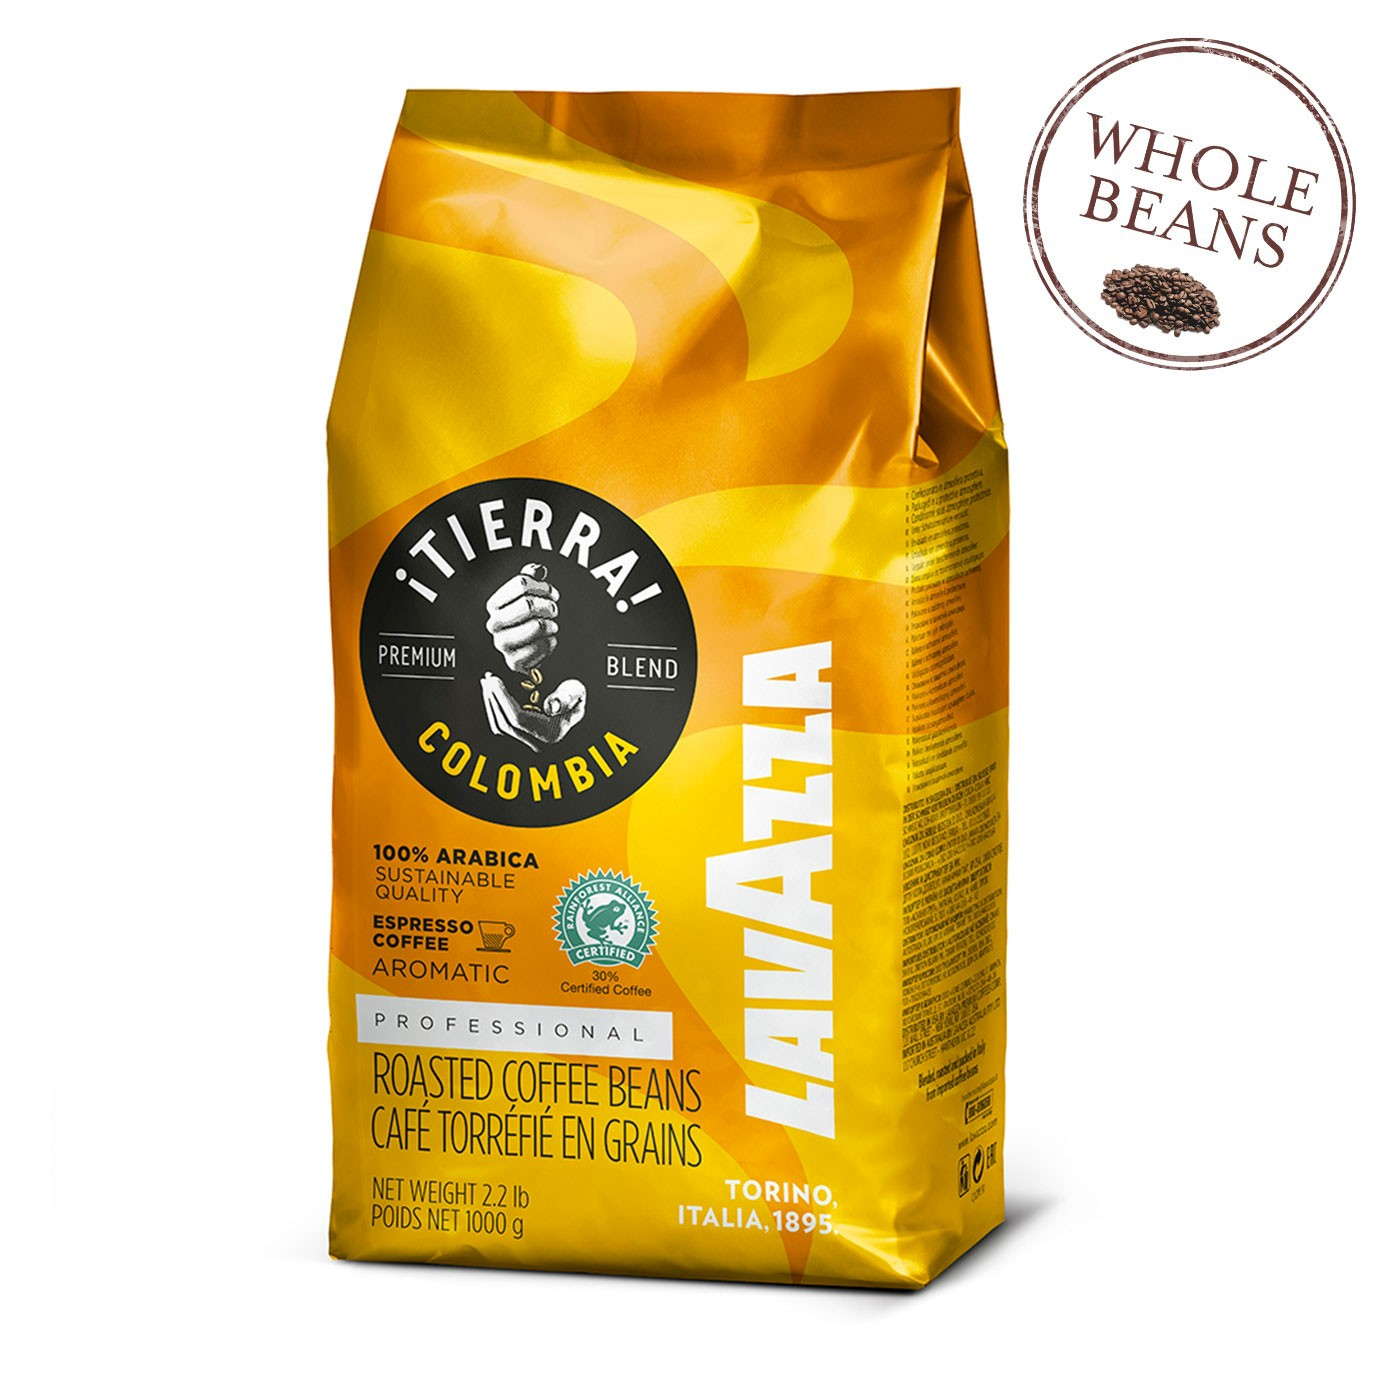 ¡Tierra! Colombia 100% Arabica Whole Beans 35.2 oz